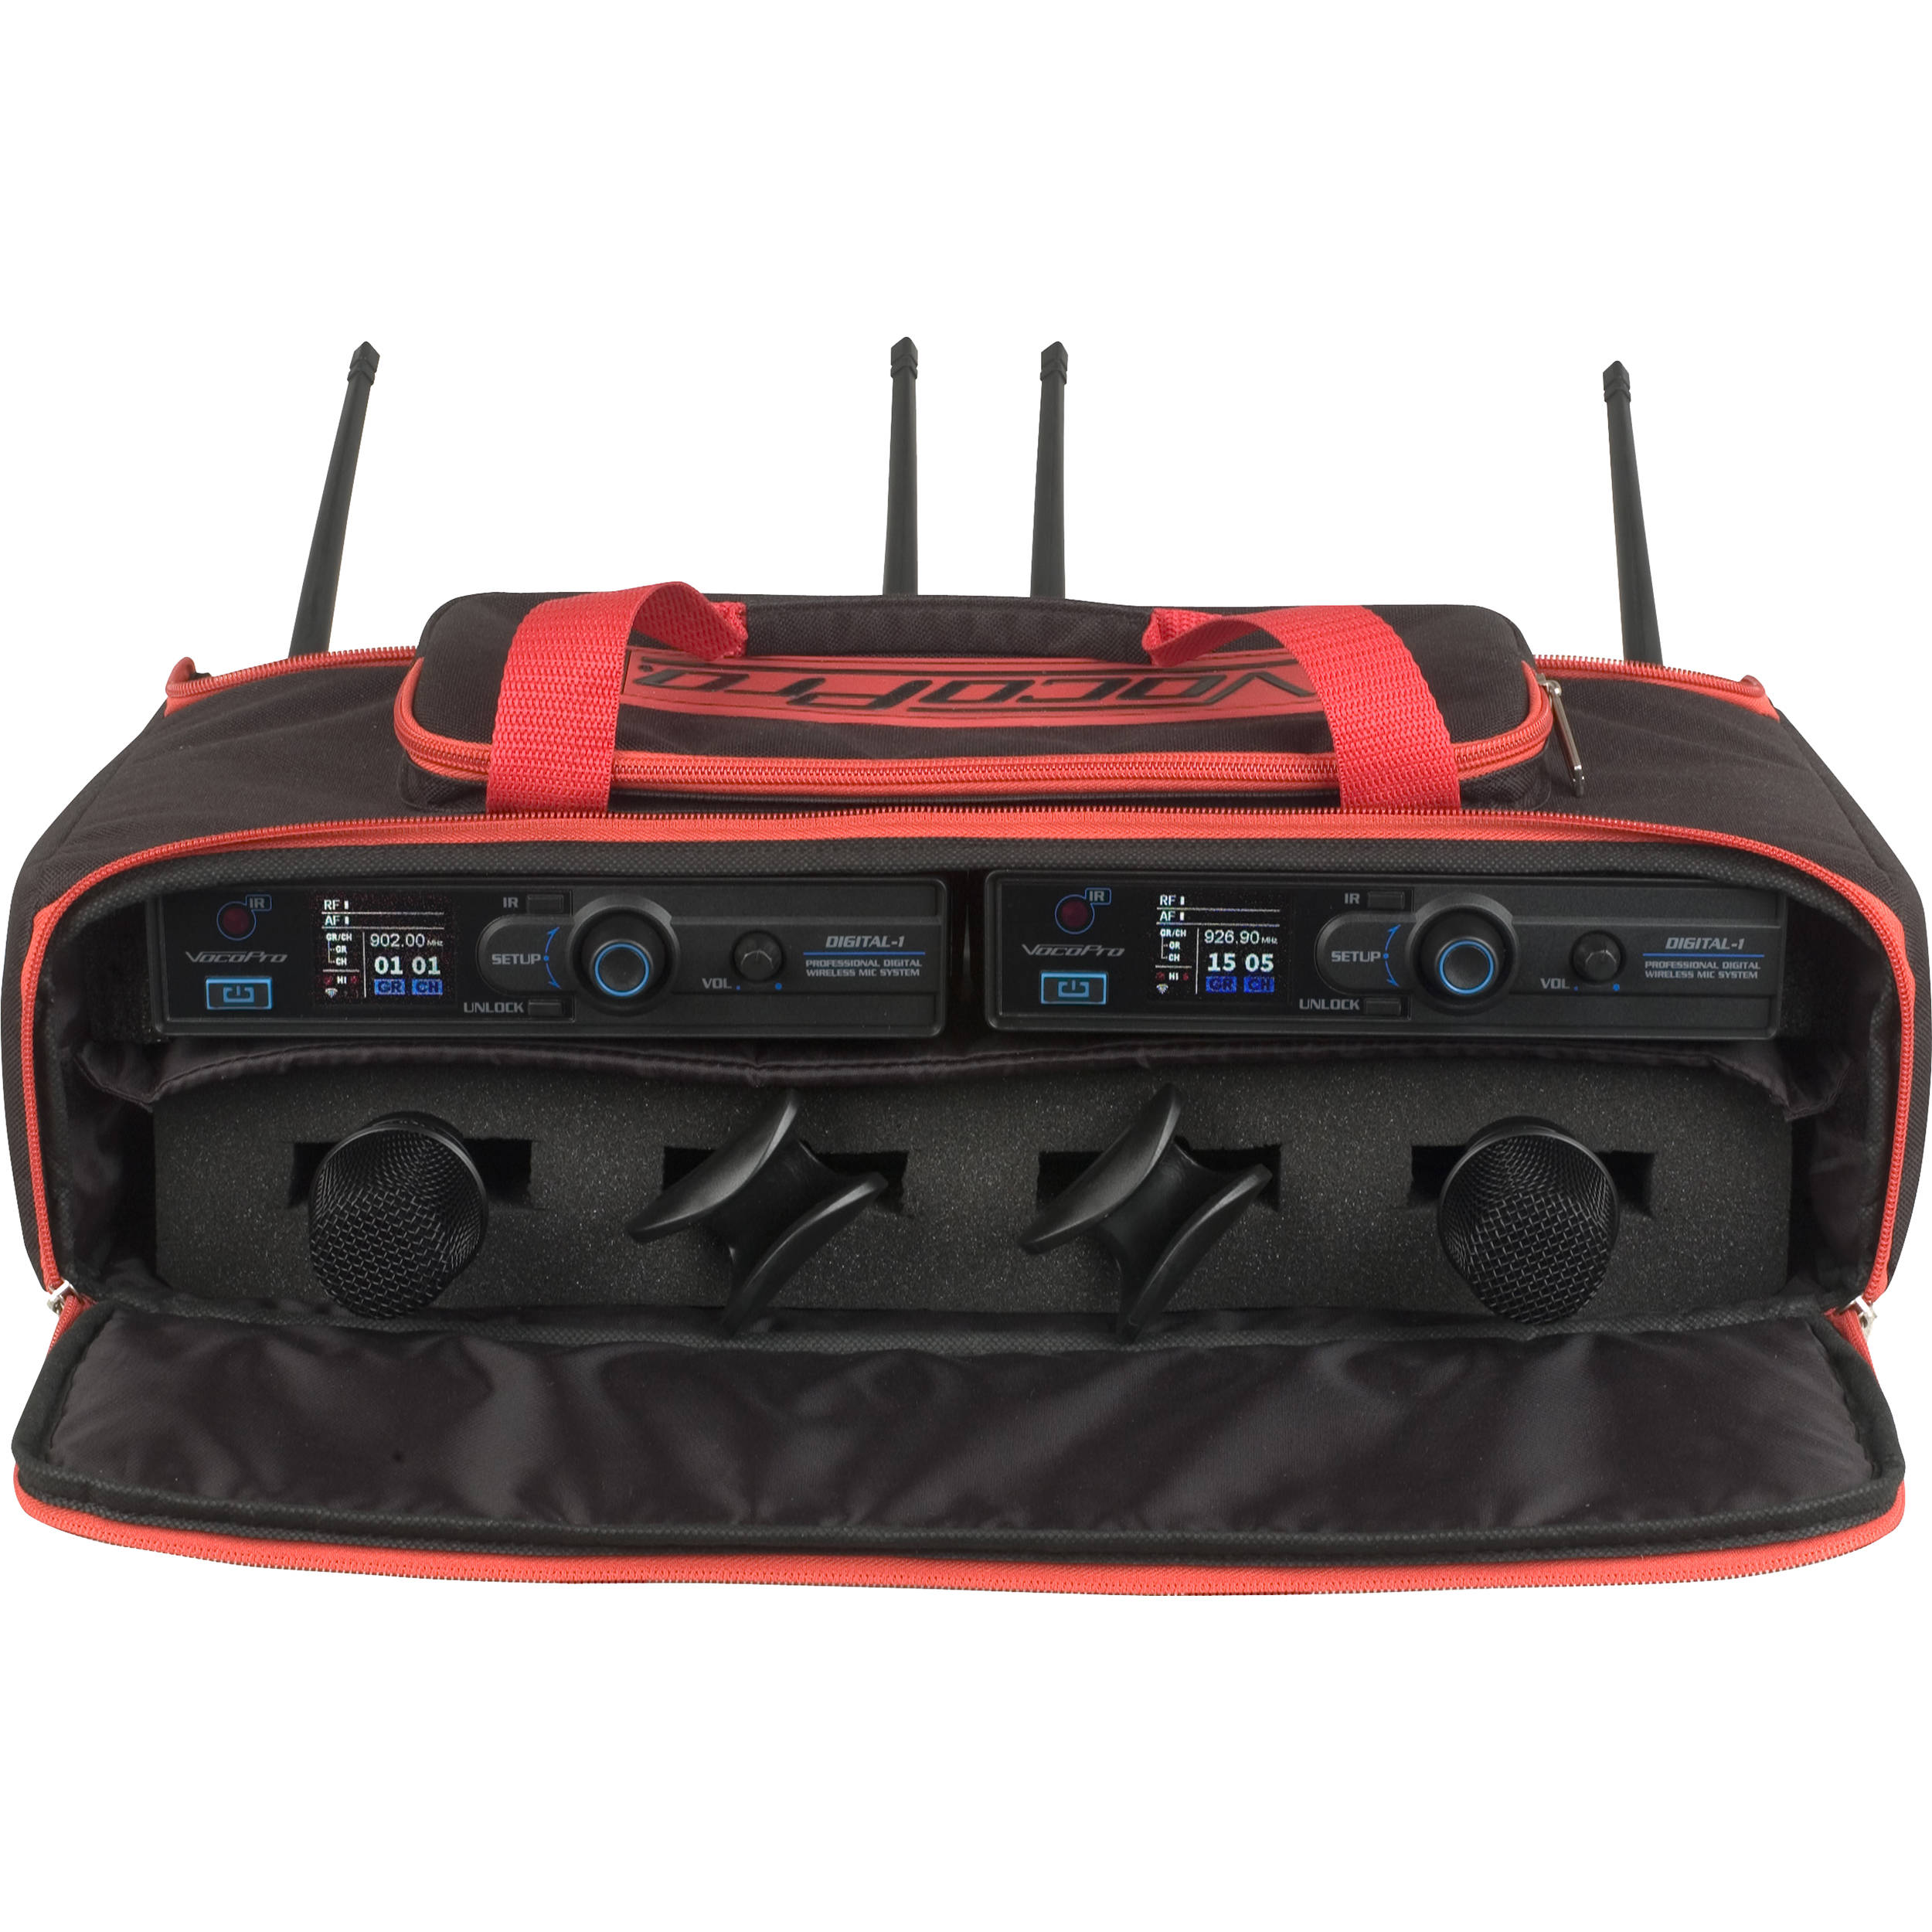 VocoPro Digital 1 Twin Pack 2 Wireless Handheld Mic Package With Carrying Bag